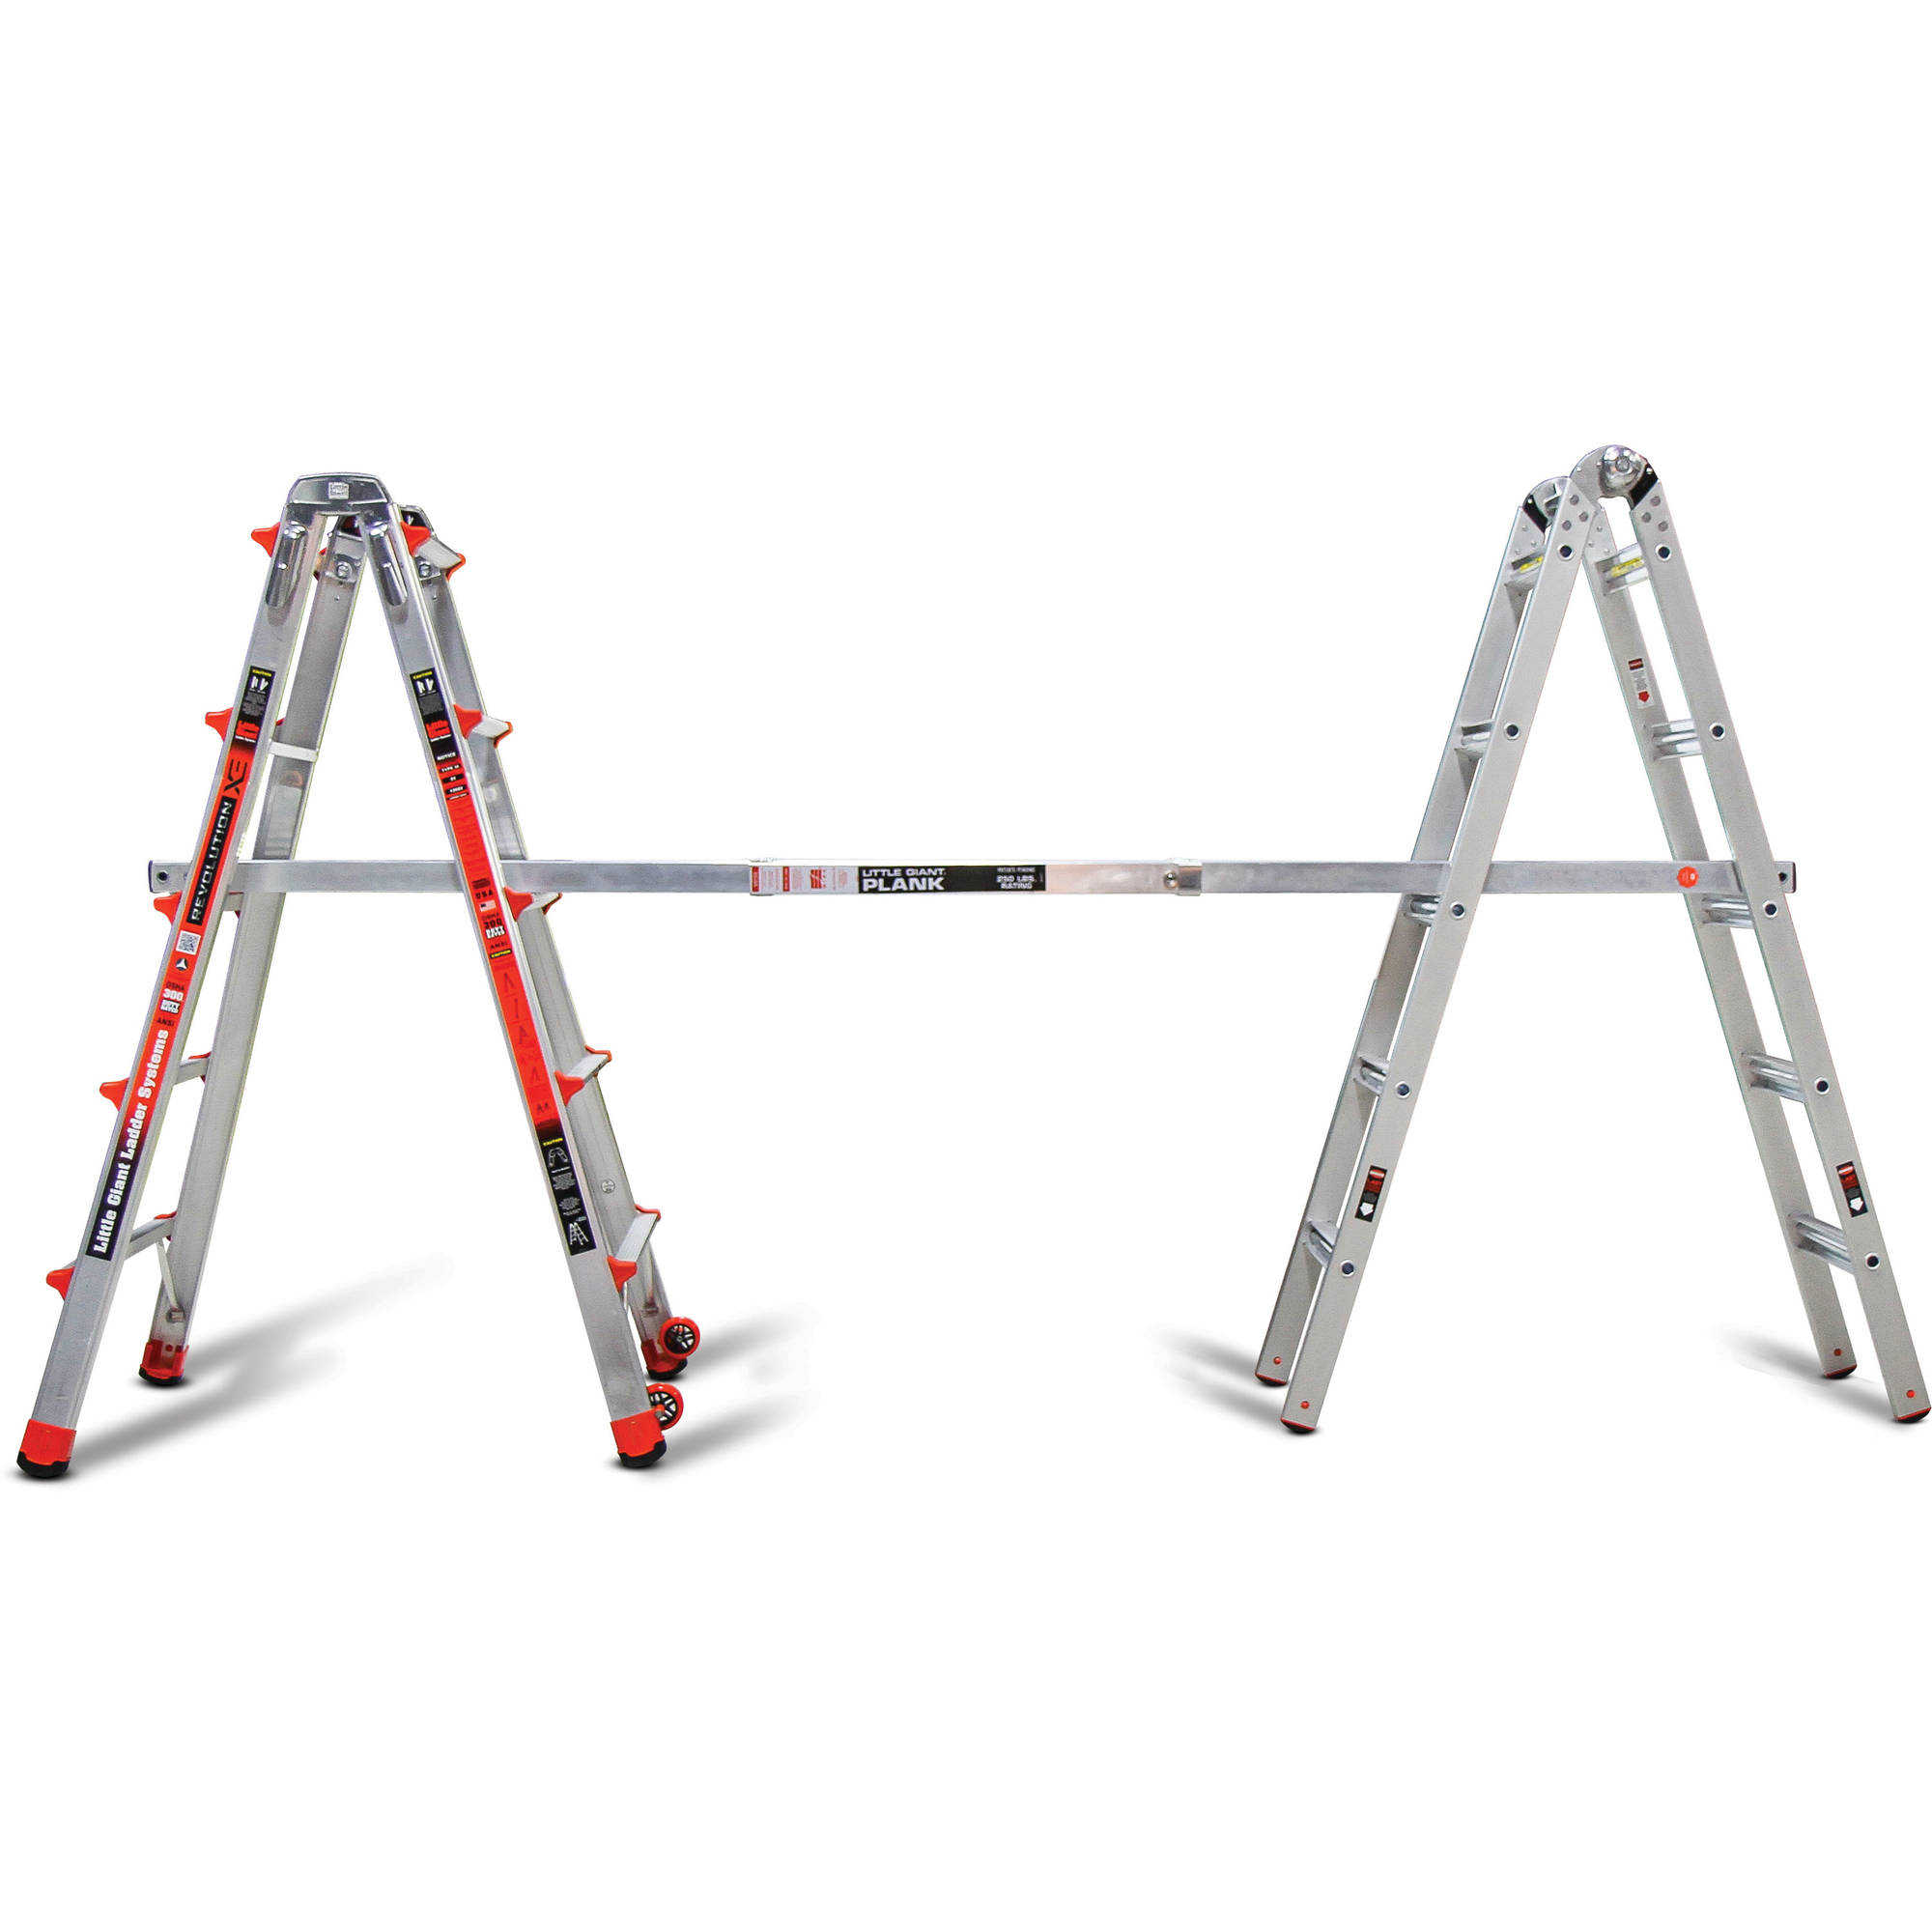 Little Giant Ladder Systems Revolution Type 1A Model 22 Ladder